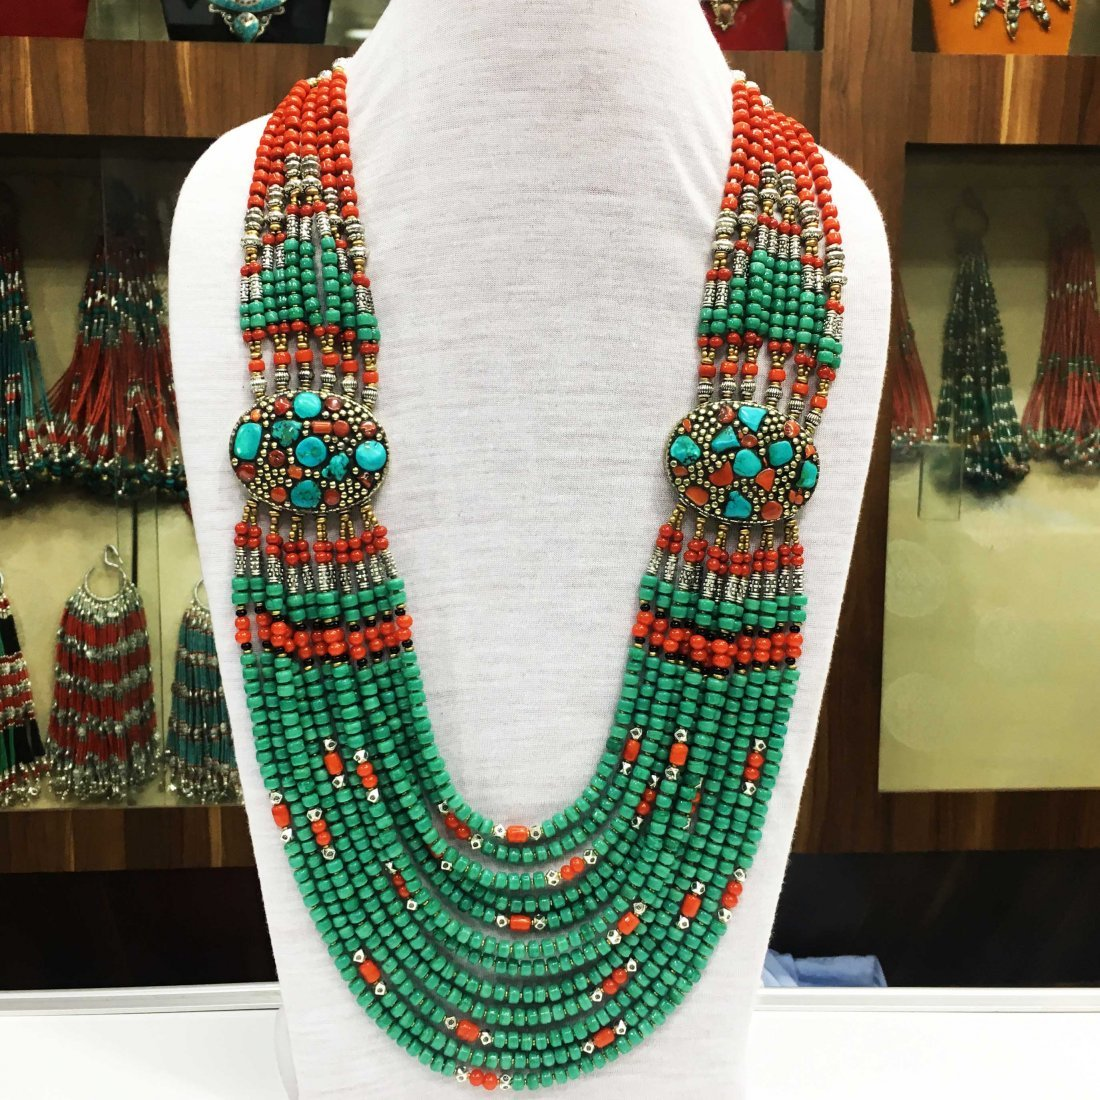 Handmade Tibetan Turquoise & Coral Necklace